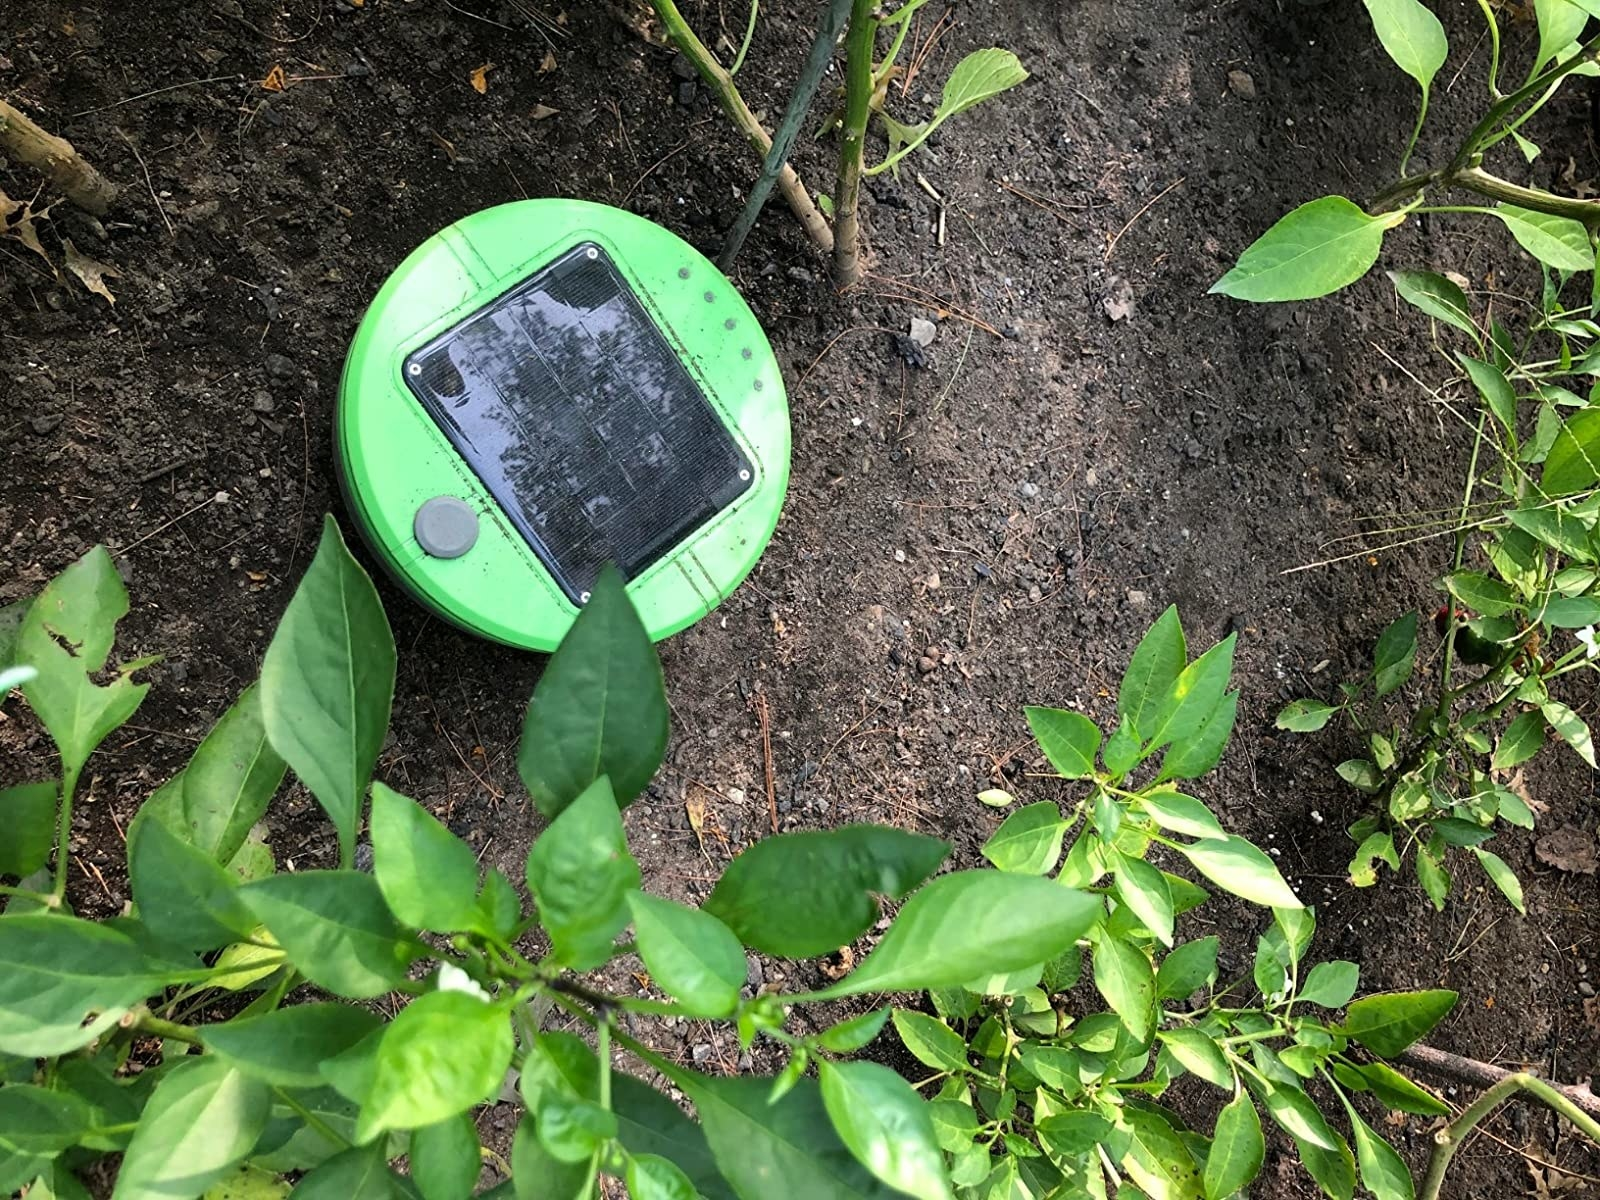 the weeding robot in a reviewers garden